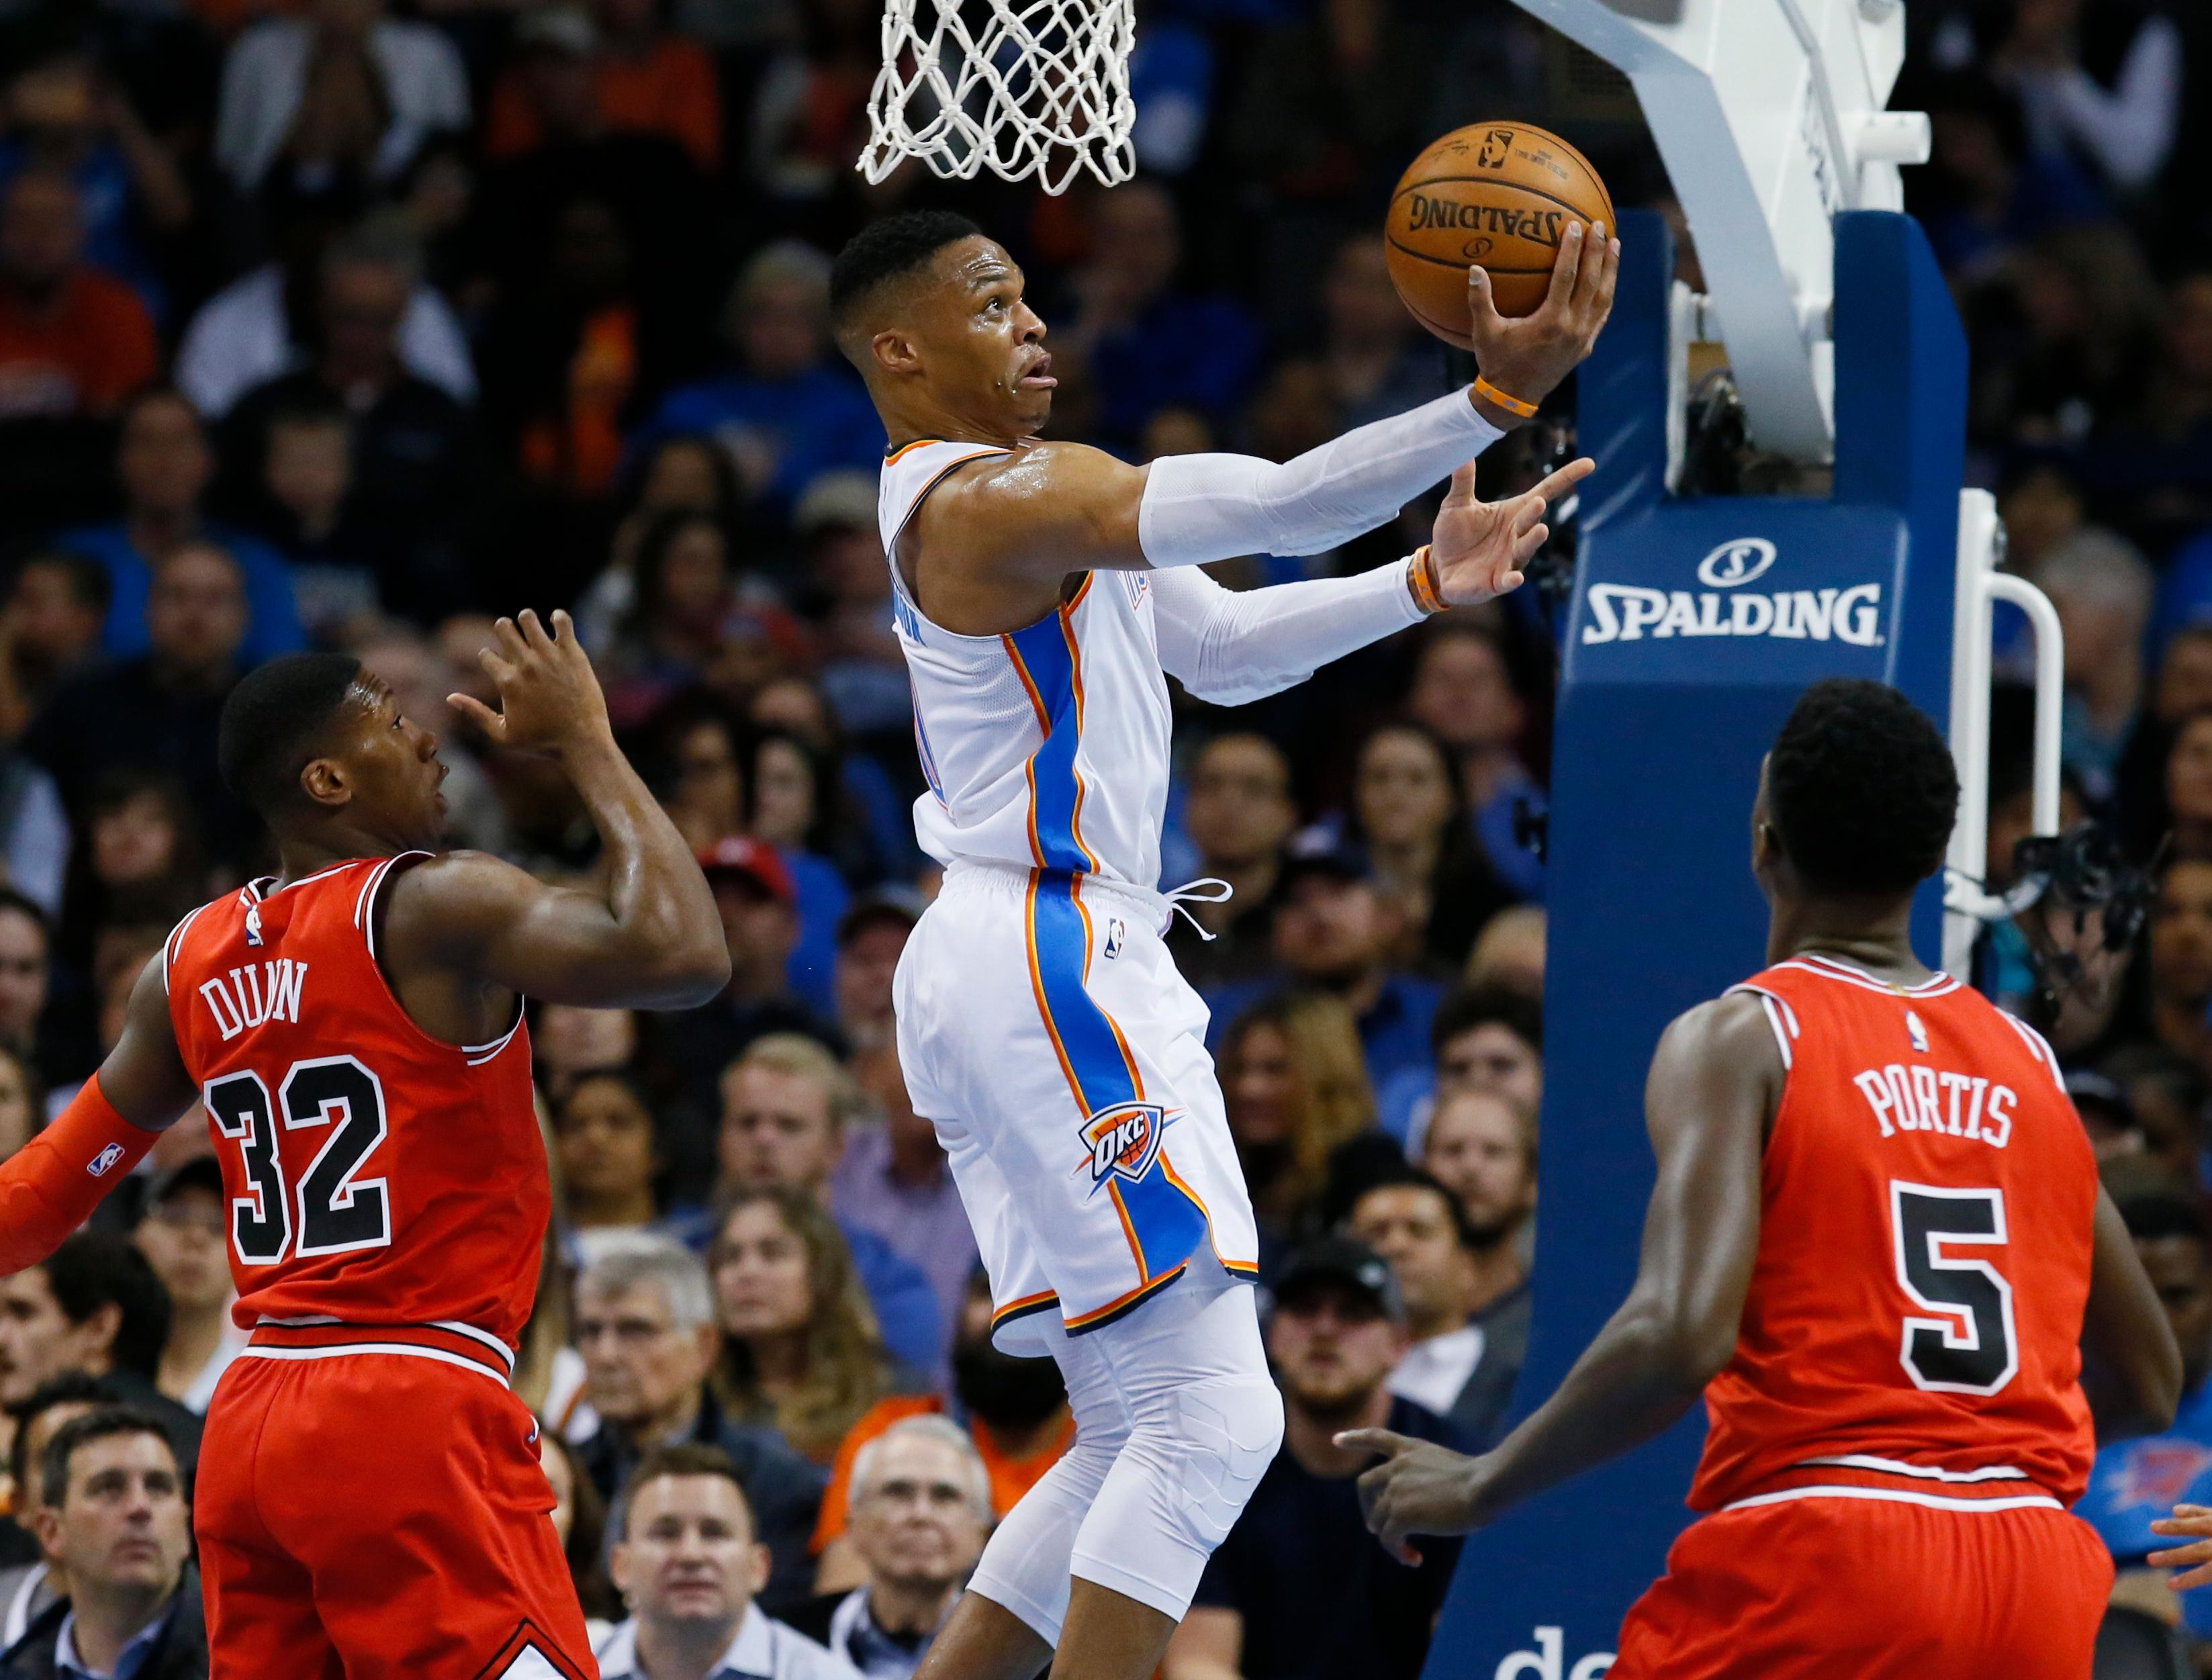 Oklahoma City Thunder guard Russell Westbrook, center, shoots between Chicago Bulls guard Kris Dunn (32) and forward Bobby Portis (5) in the first quarter of an NBA basketball game in Oklahoma City, Wednesday, Nov. 15, 2017. (AP Photo/Sue Ogrocki)